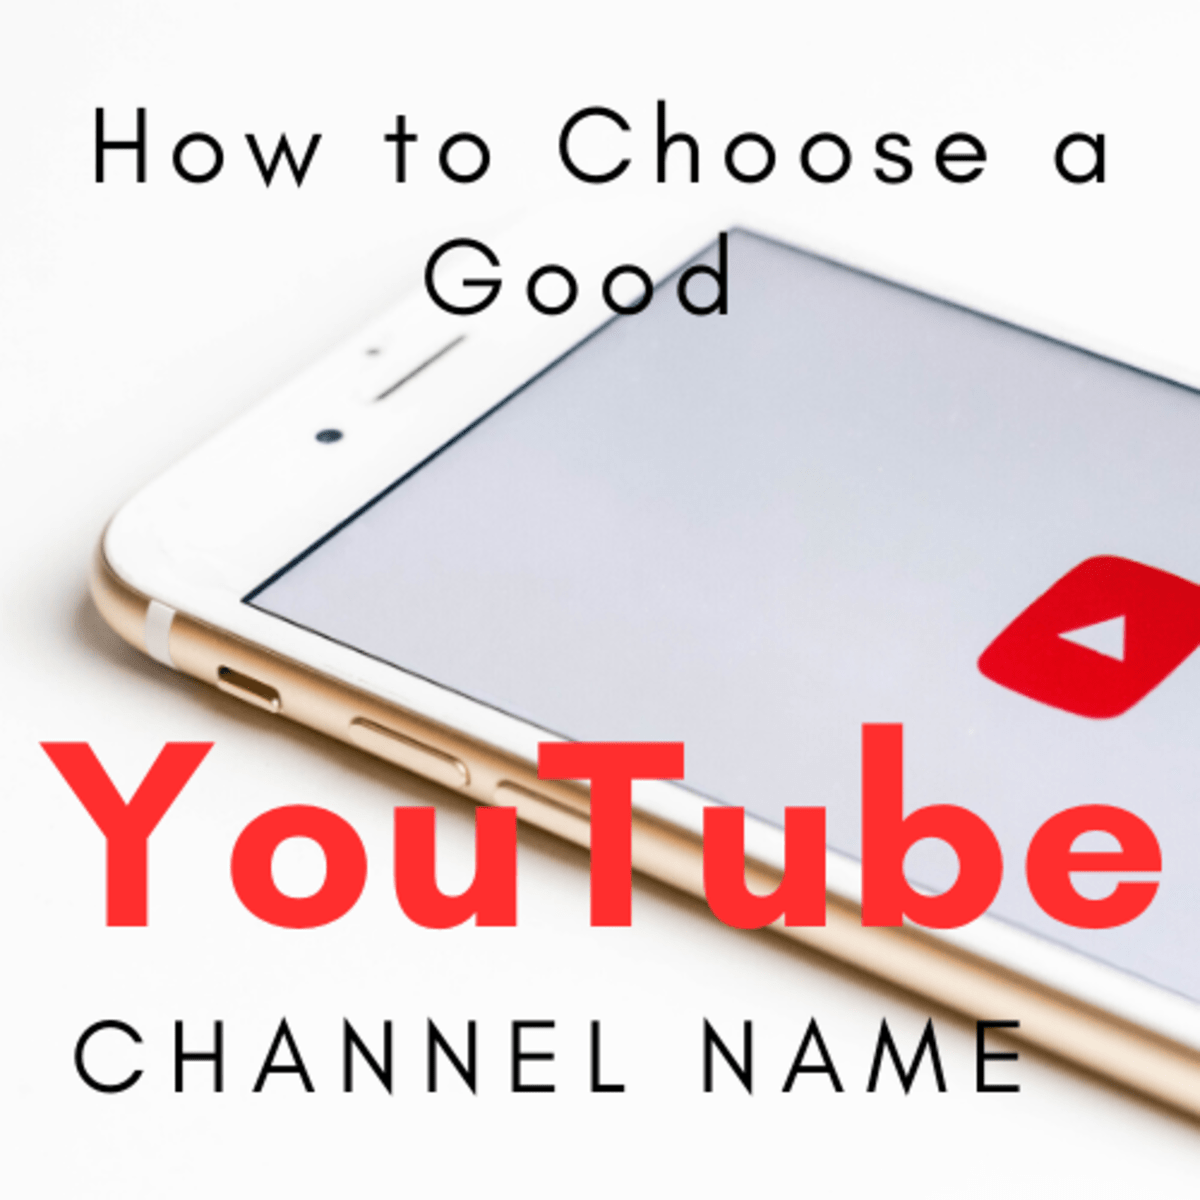 200 Creative Youtube Channel Names For Brands And Business Turbofuture Technology